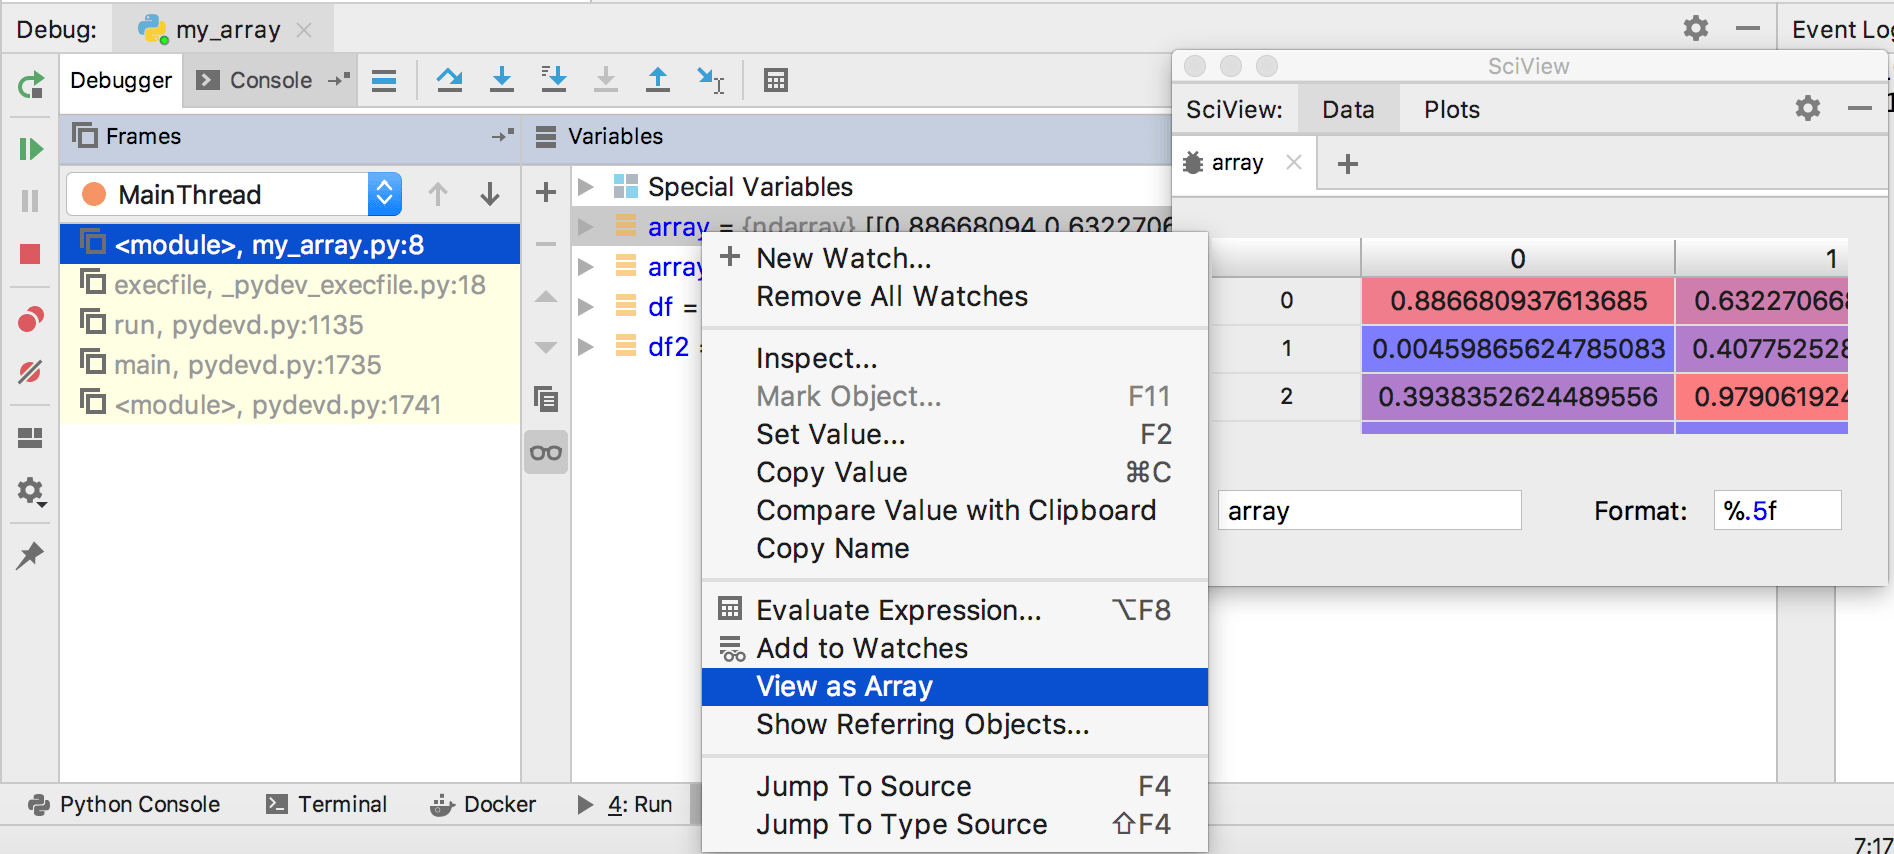 Viewing as Array or DataFrame - Help | PyCharm